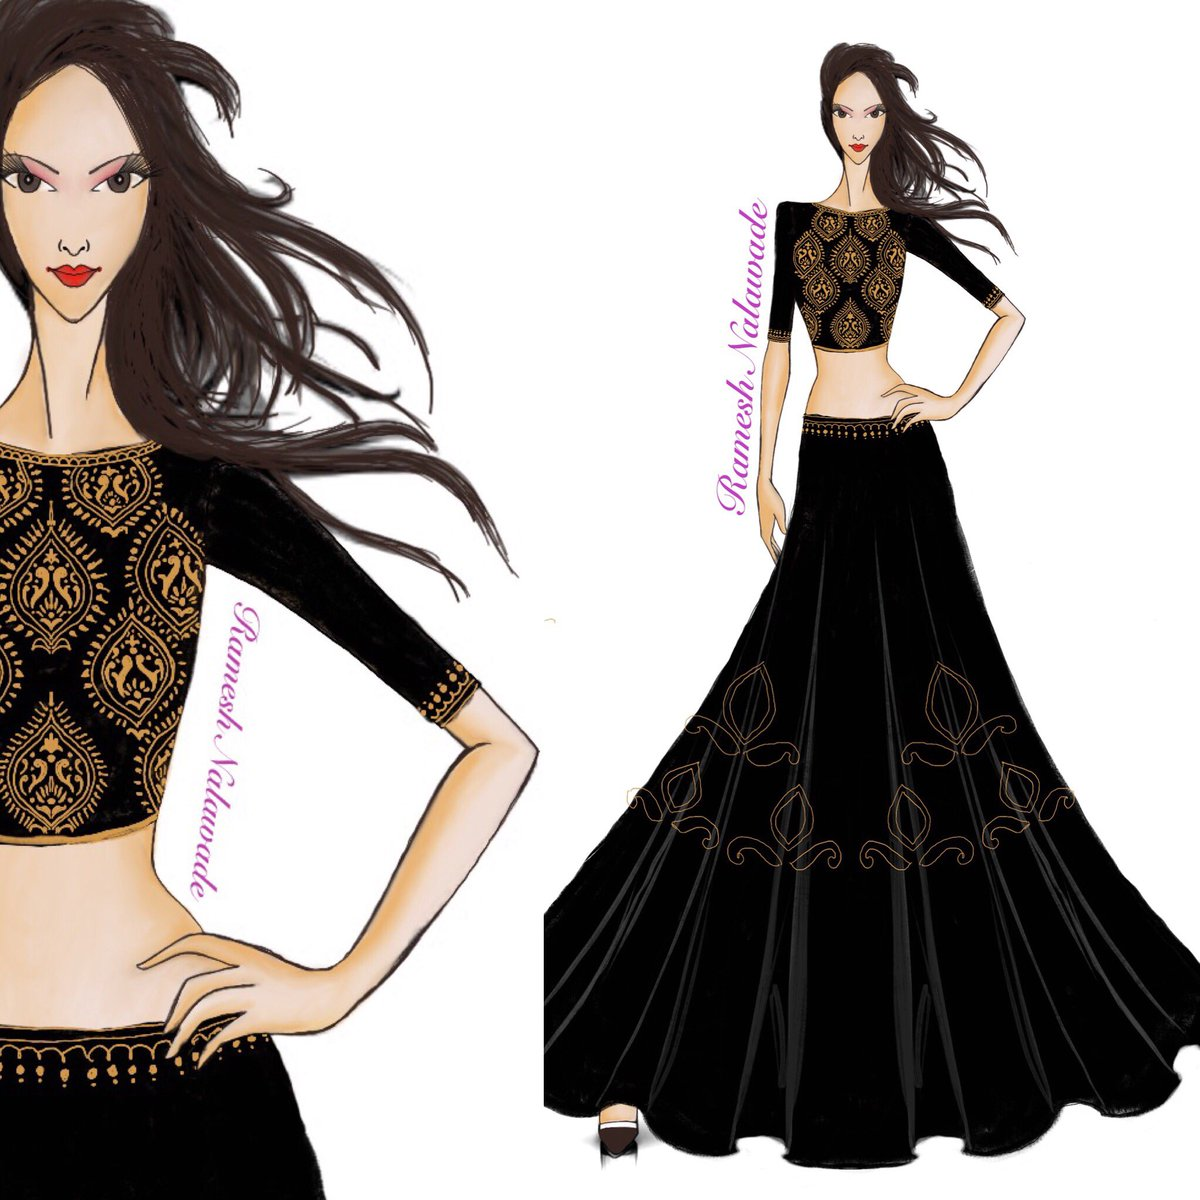 Fashion Sketches Indian Dresses Chelss Chapman